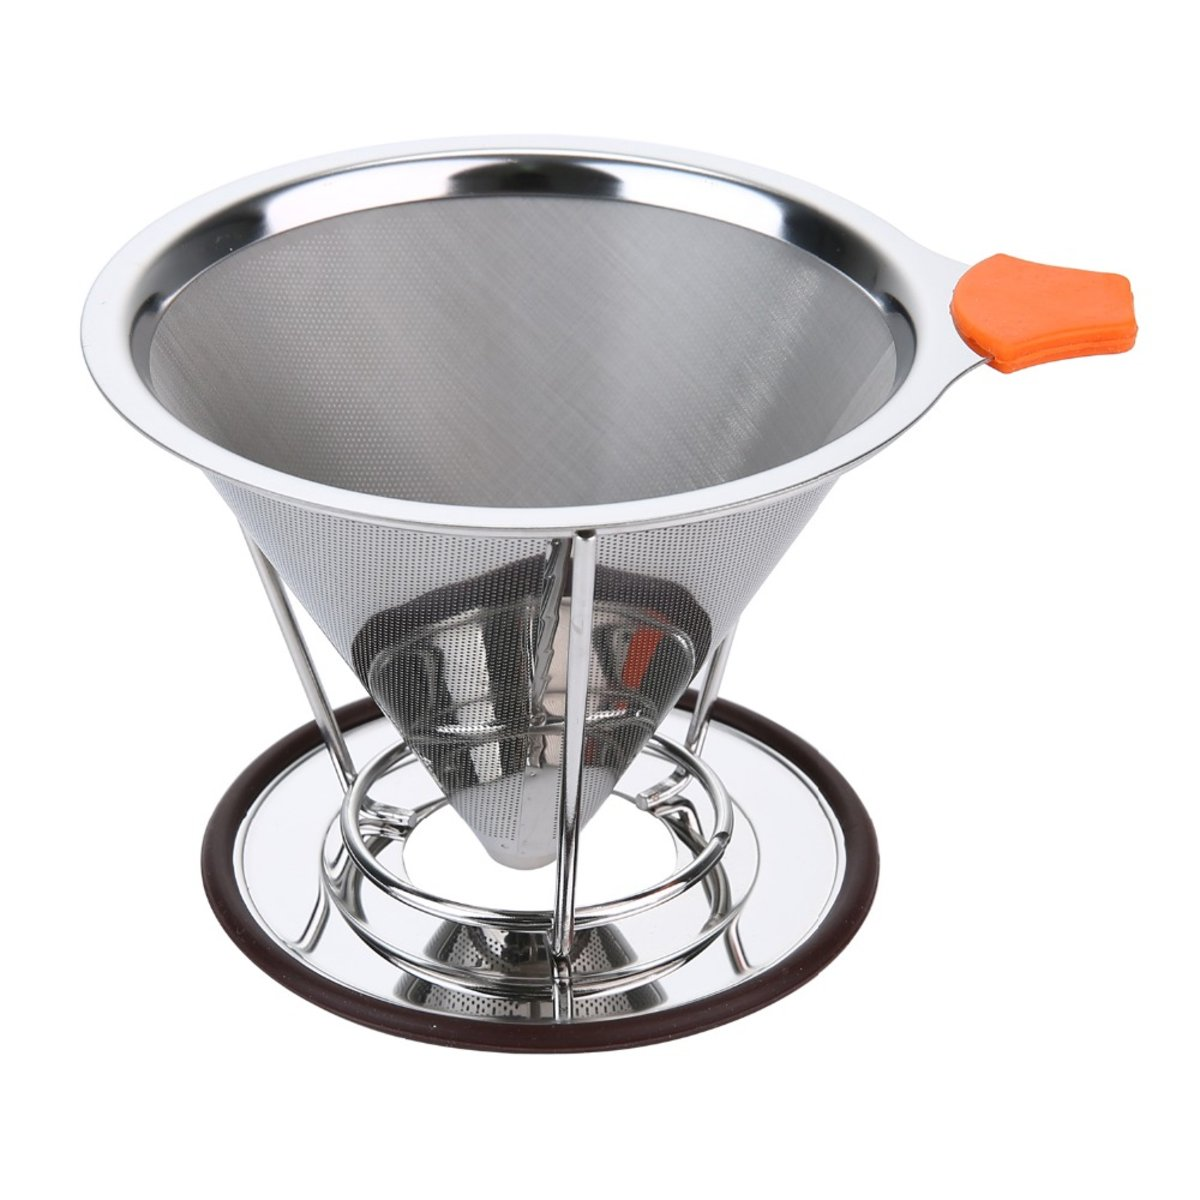 Reusable Stainless Steel Pour Over Coffee Filter Cone Coffee Dripper Coffee Maker Stand for 1-4 cups